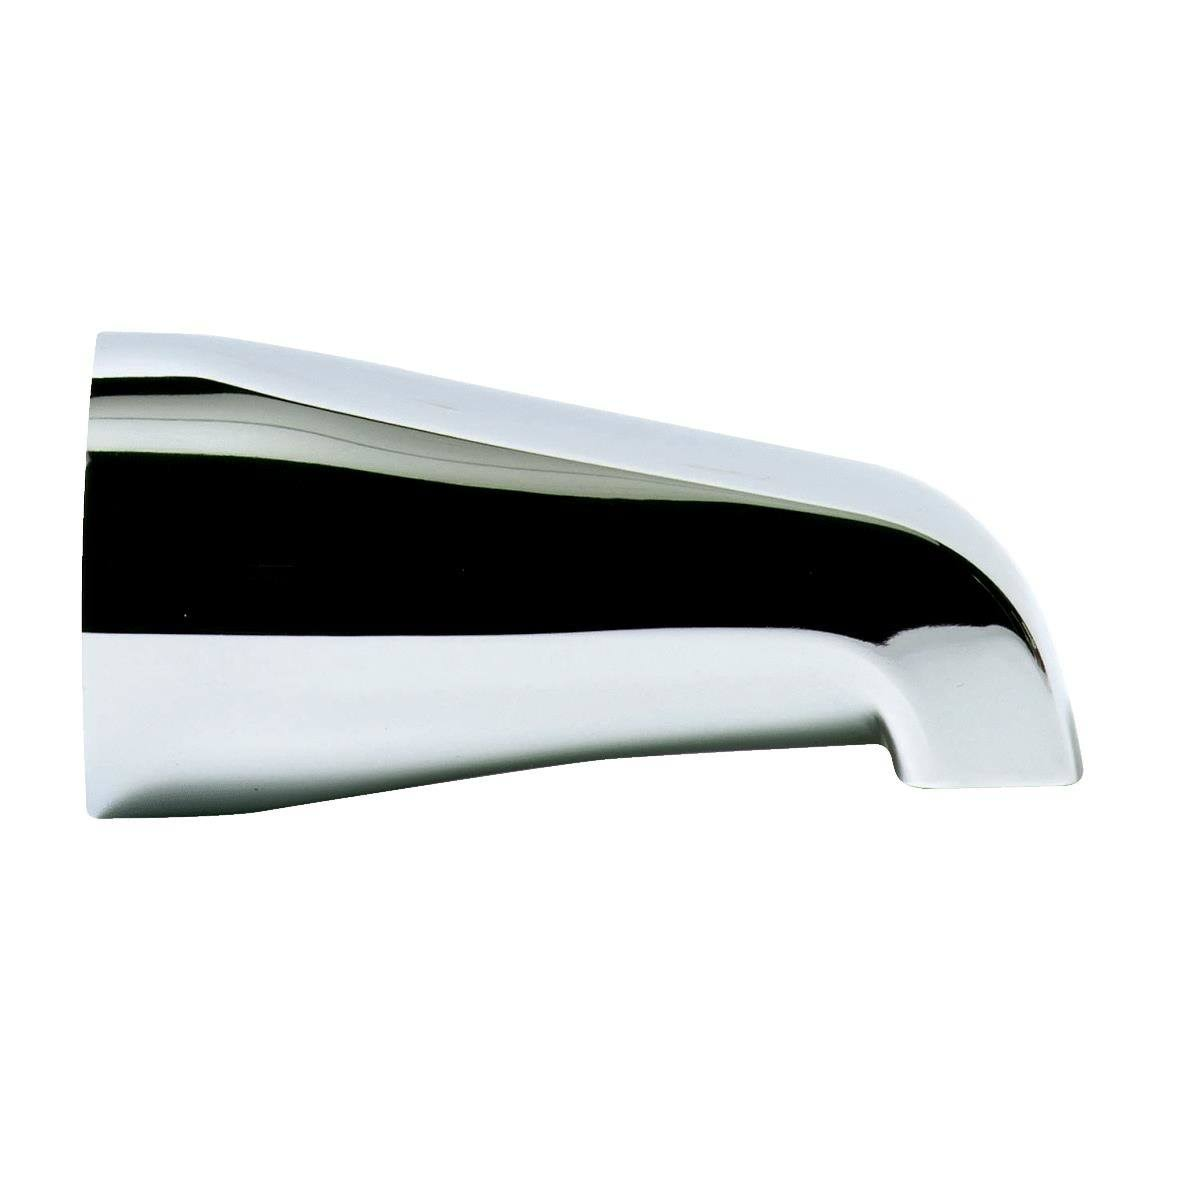 Do it 406769 Zinc Replacement Tub Spout - Chrome Plated